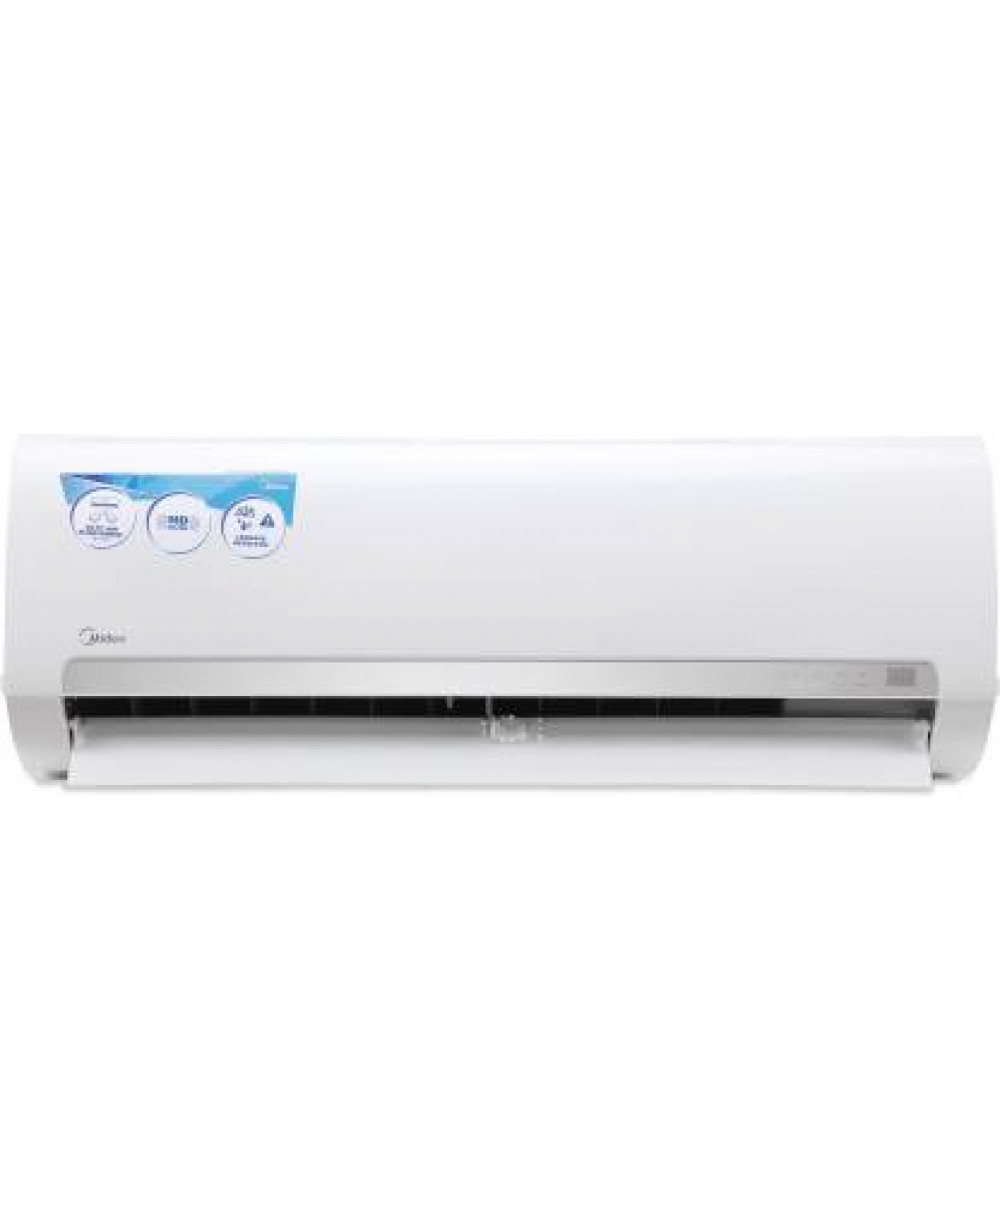 MIDEA 1 5 Ton Wall Mounted Air Conditioner MS11D-18HRN1